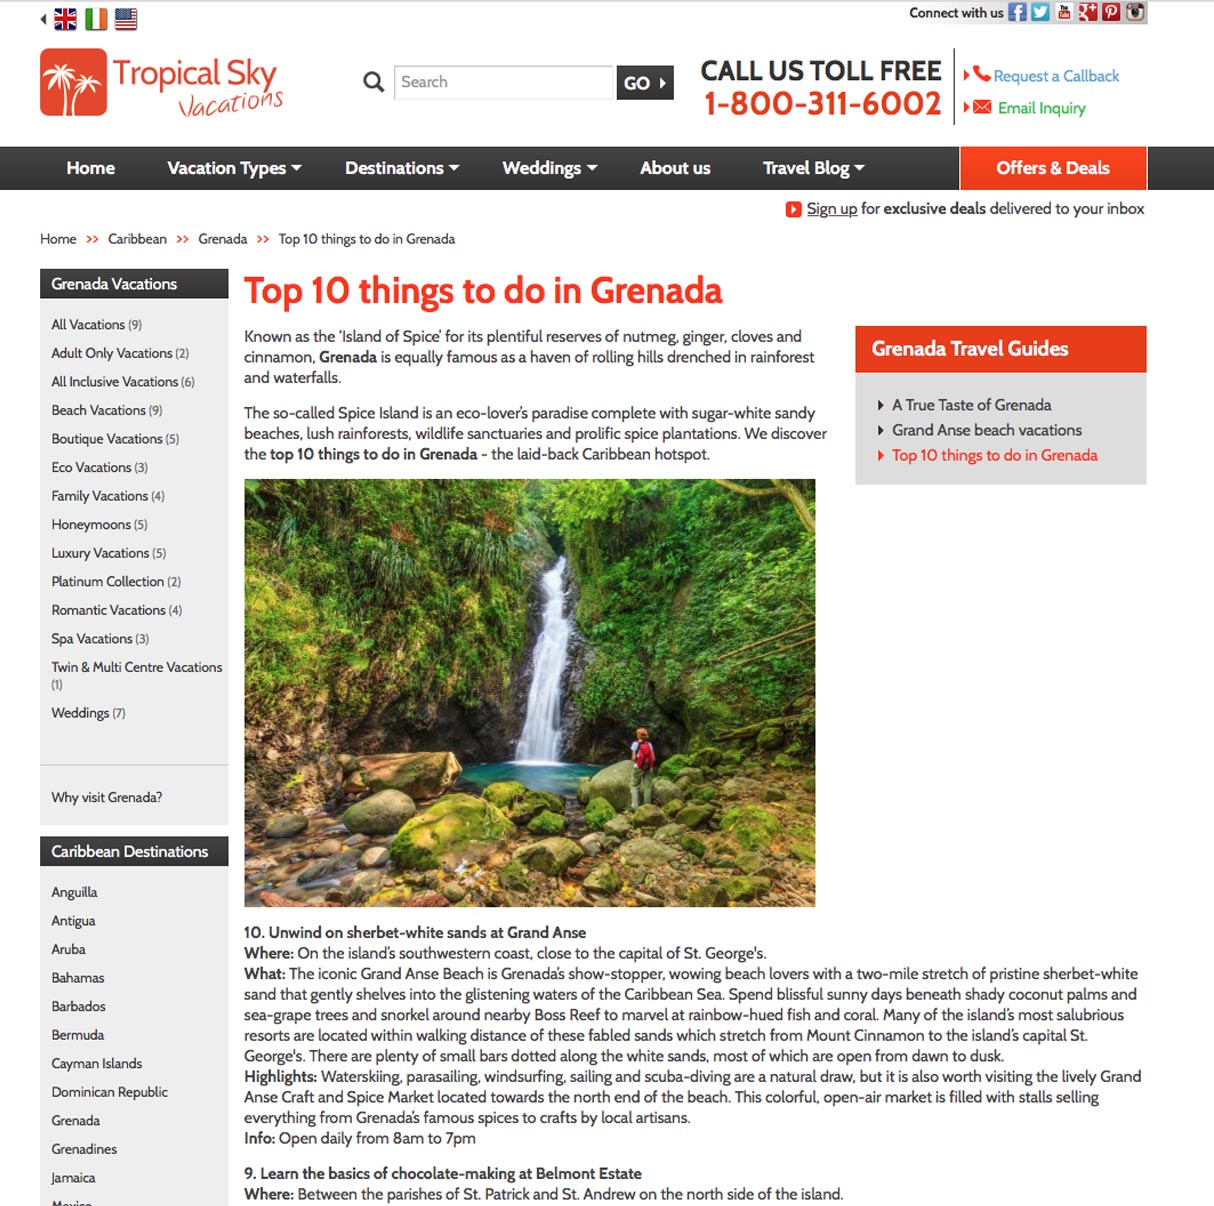 Top 10 things to do in Grenada